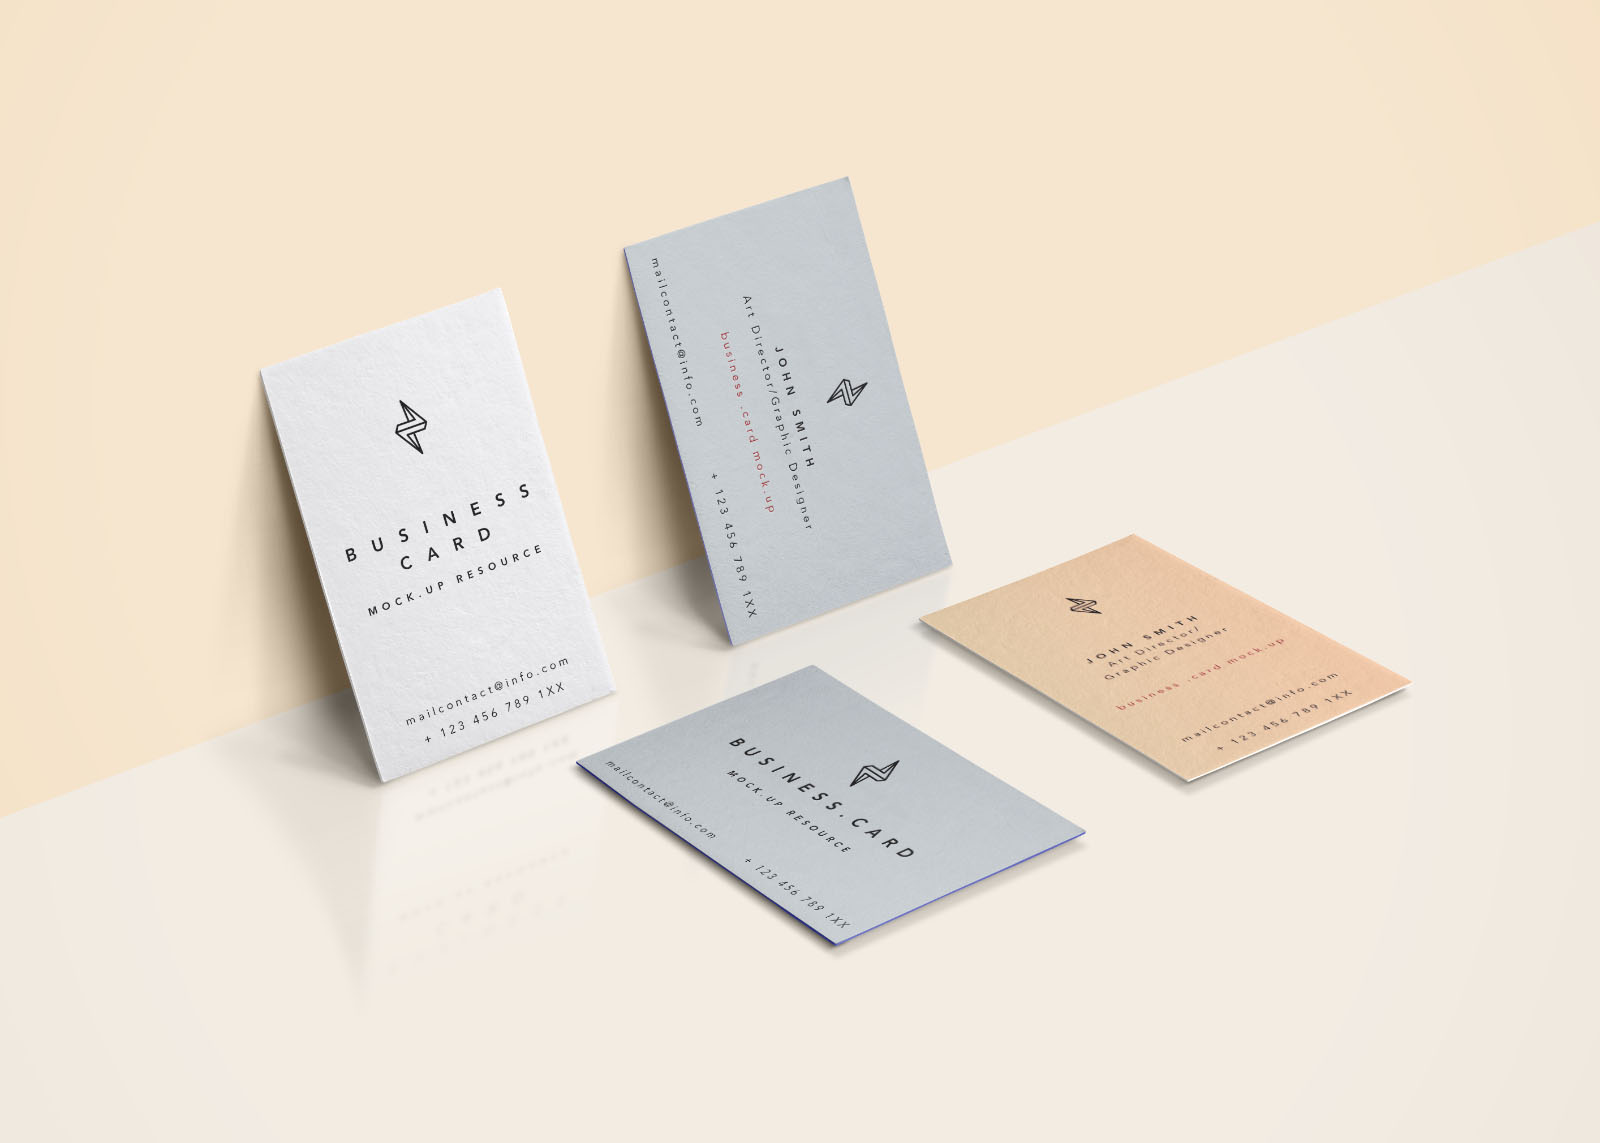 4 Business Cards Scene Mockup